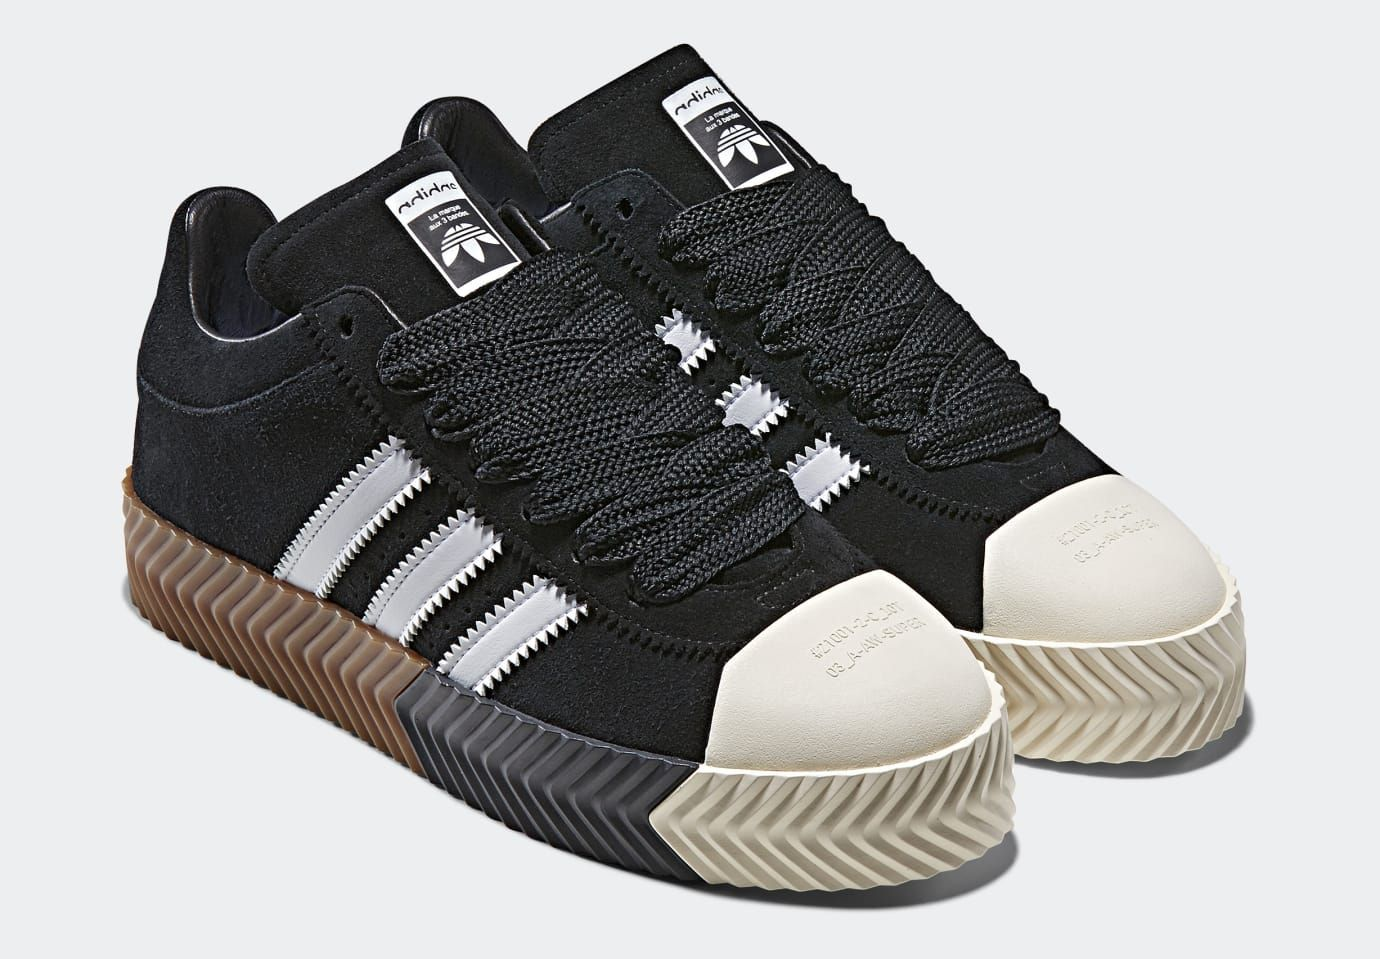 best website e227f 0cf2a Alexander Wang x Adidas AW Skate Super 'Black' (Pair ...